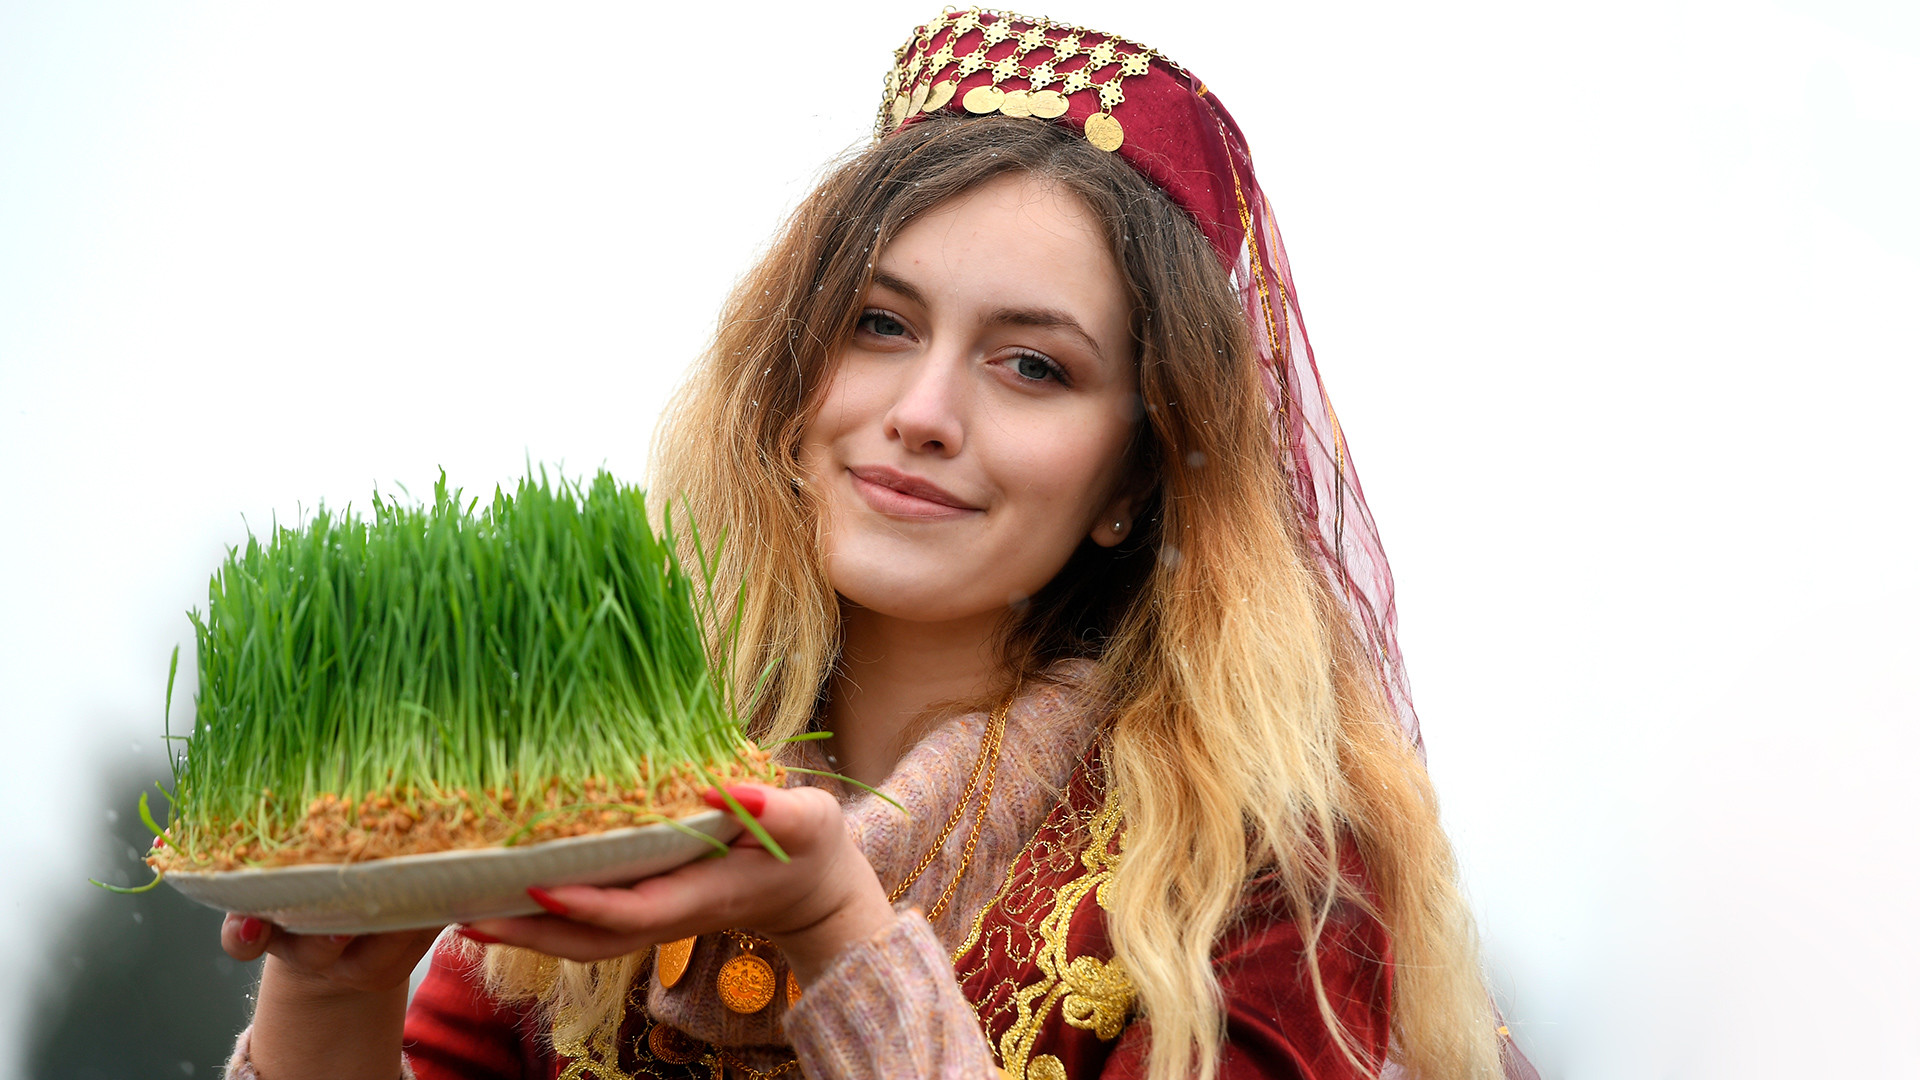 Russia celebrates Nowruz with dancing and a pilaf festival